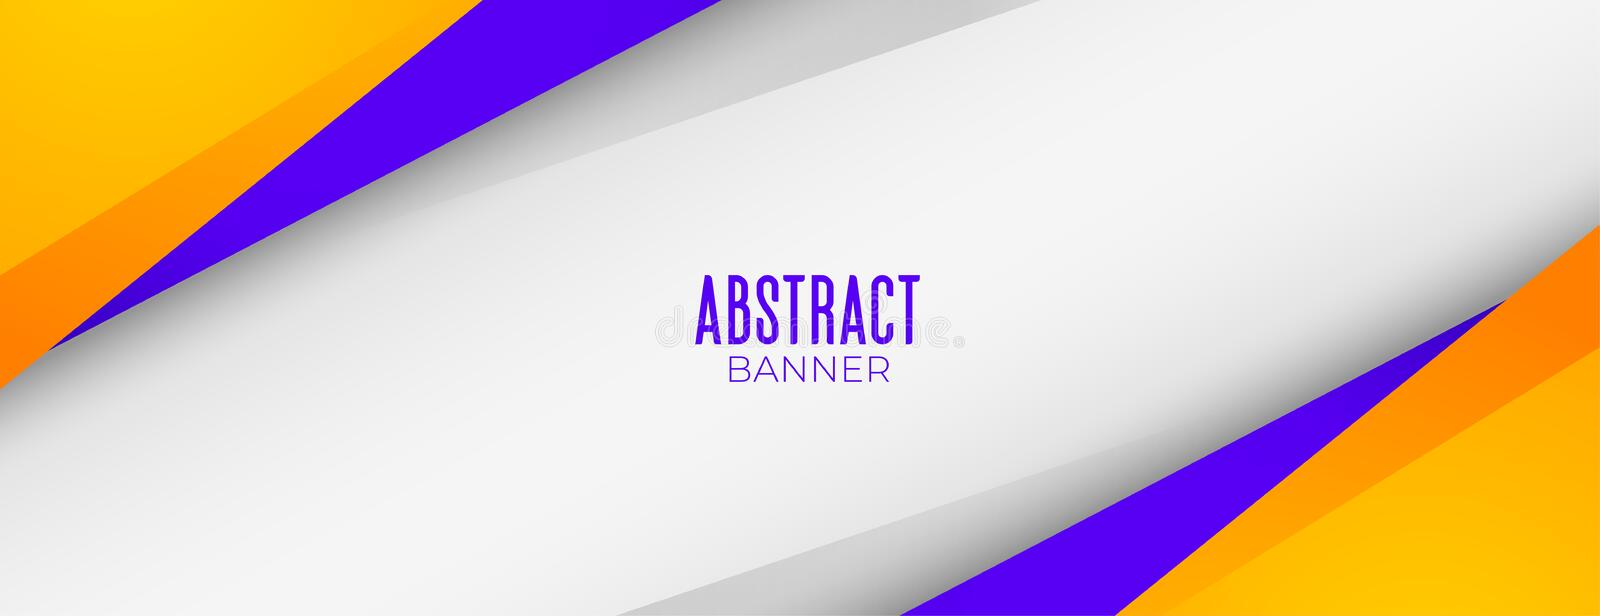 Modern abstract yellow and purple geometric banner design stock illustration